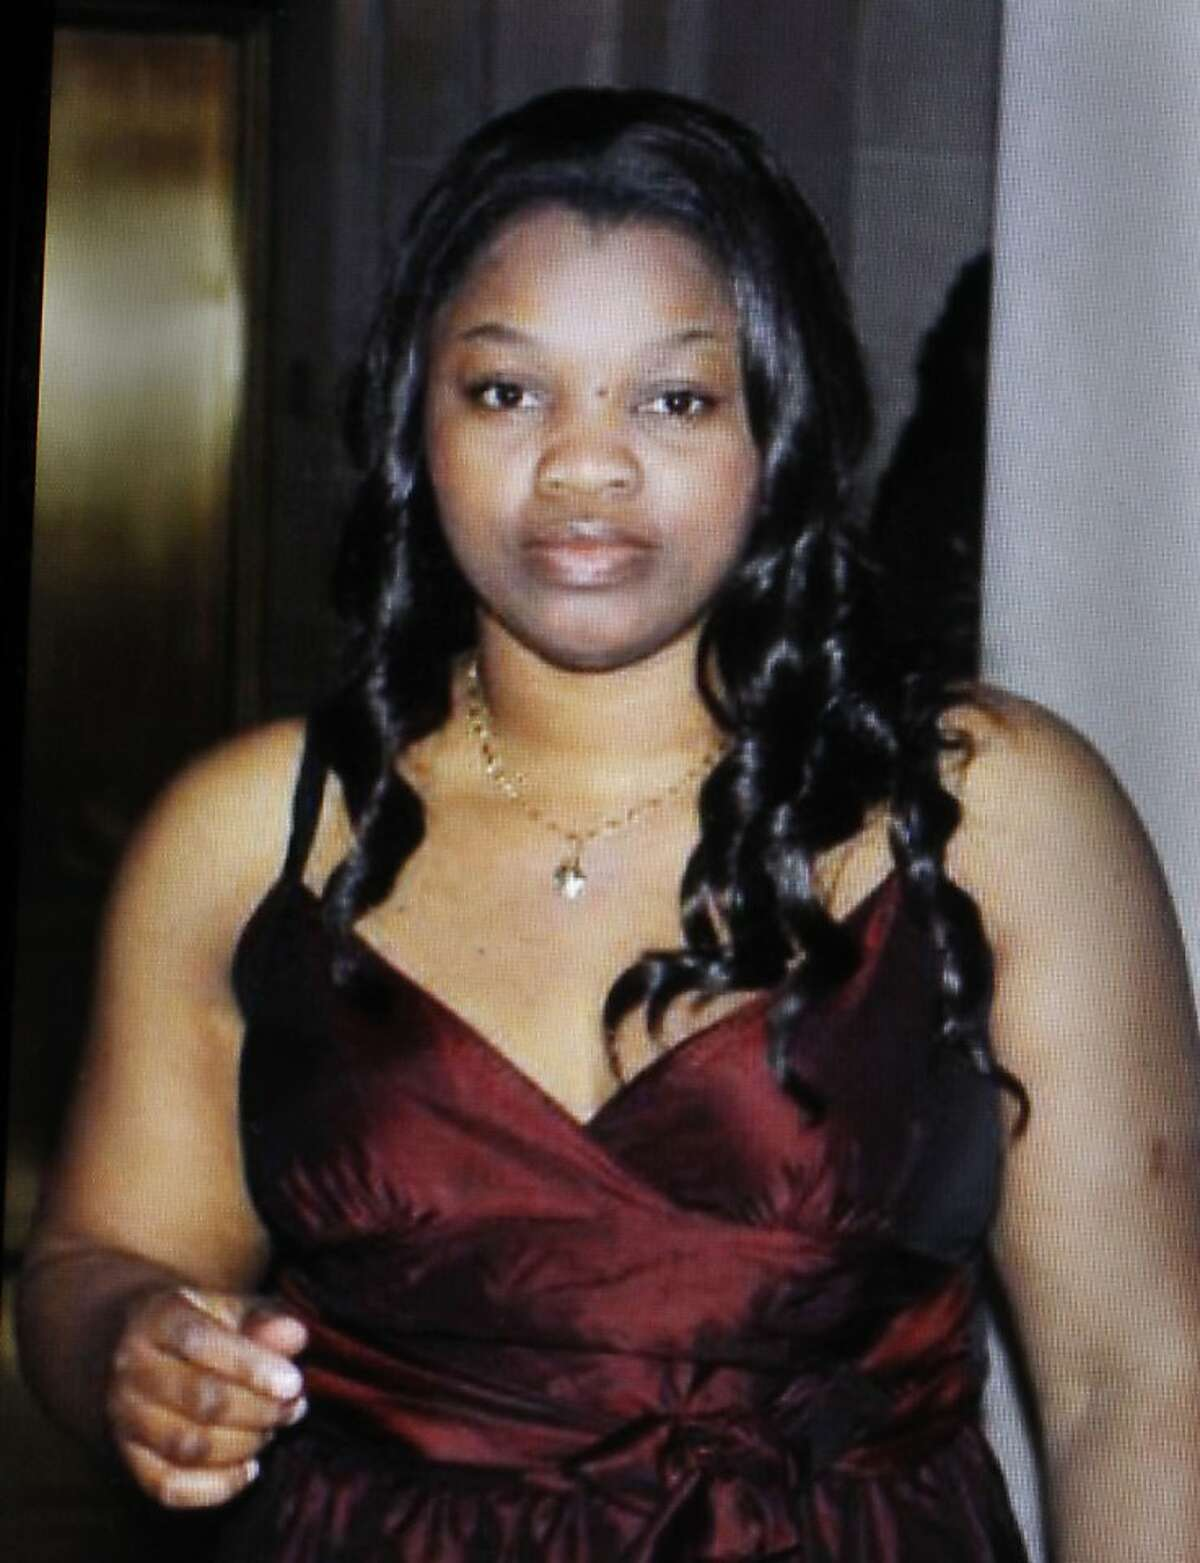 A copy photograph of Doris Chibuko, in San Leandro, Ca., on Tuesday April 3, 2012, who was one of the seven victims that shot and killed yesterday at Oikos University, in Oakland, Ca.She was a student at the school and was just two months away from graduating.